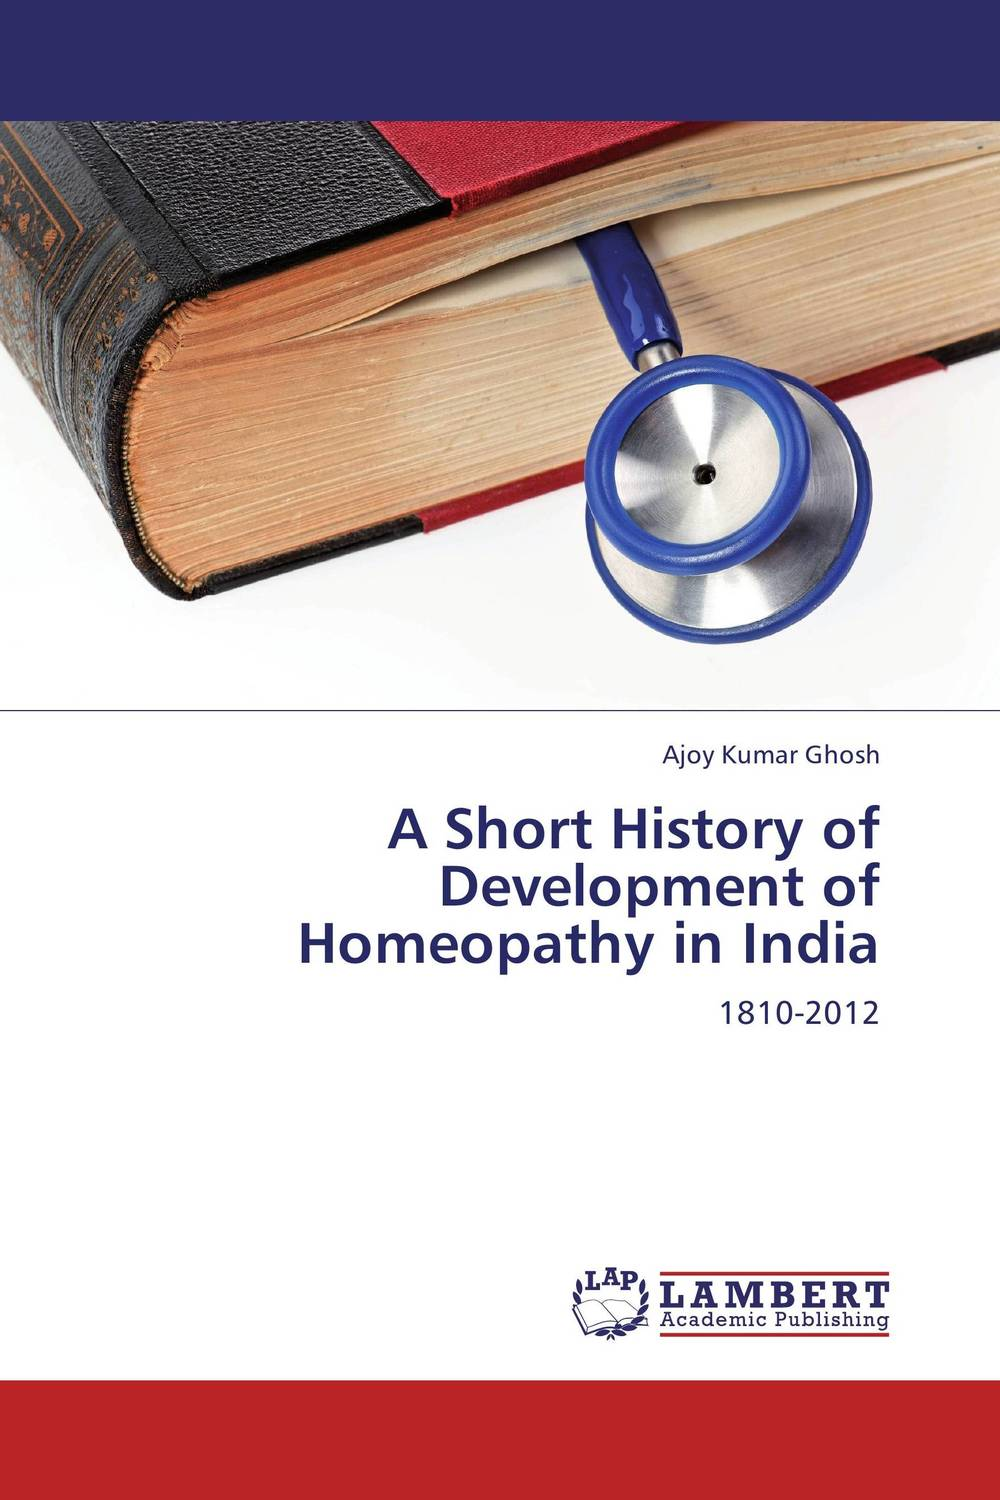 A Short History of Development of Homeopathy in India mini dp thunderbolt to vga